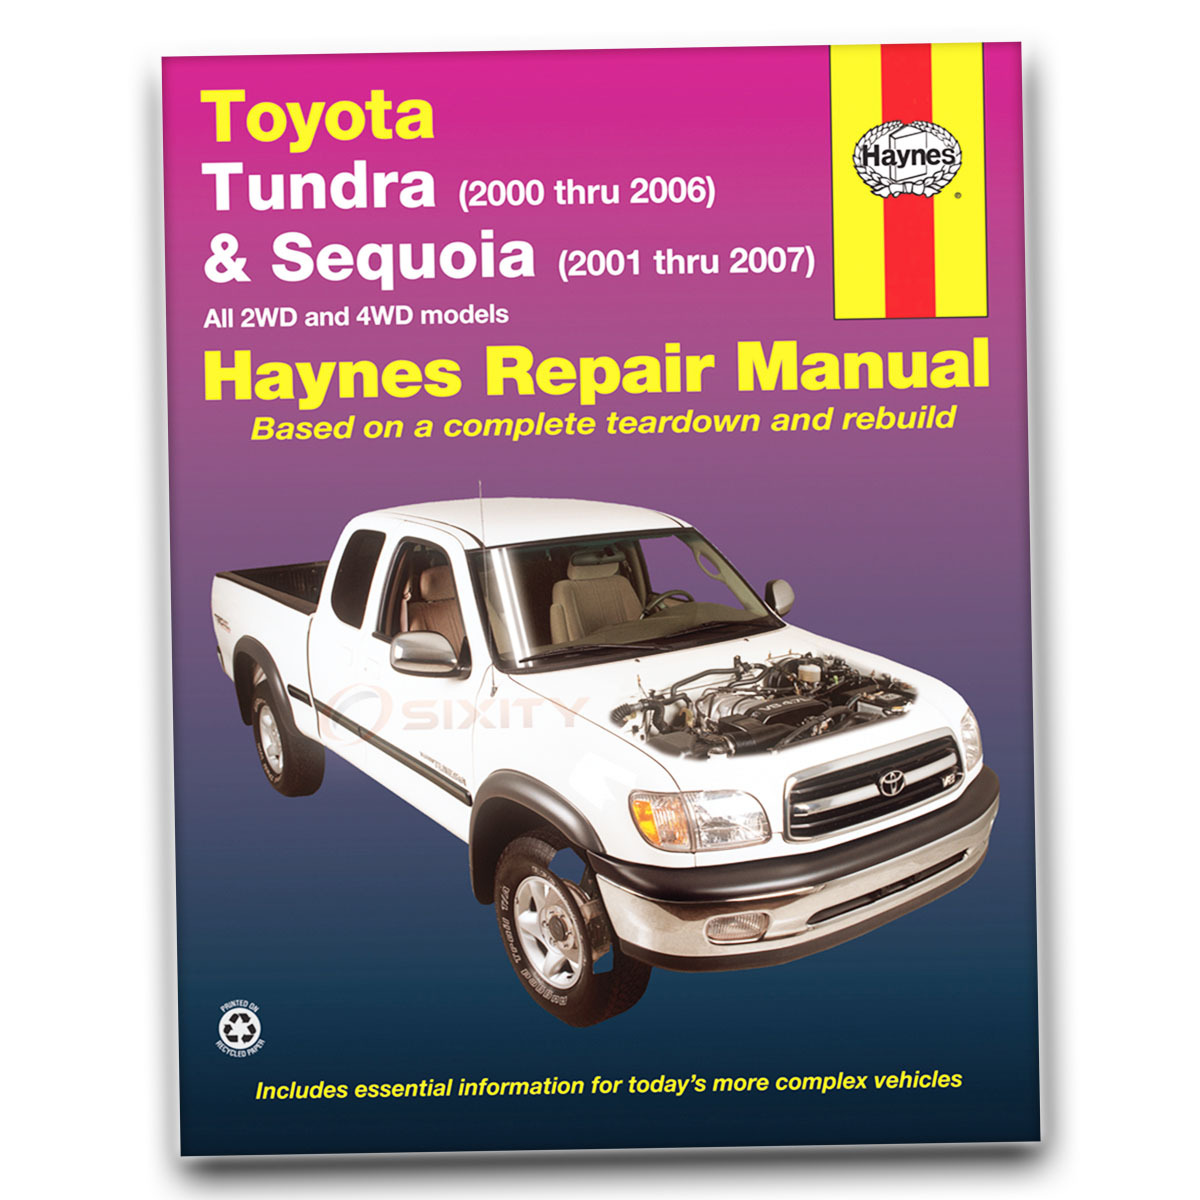 Haynes Repair Manual 92078 for Toyota Tundra 00-06 Sequoia 00-07 Shop sl